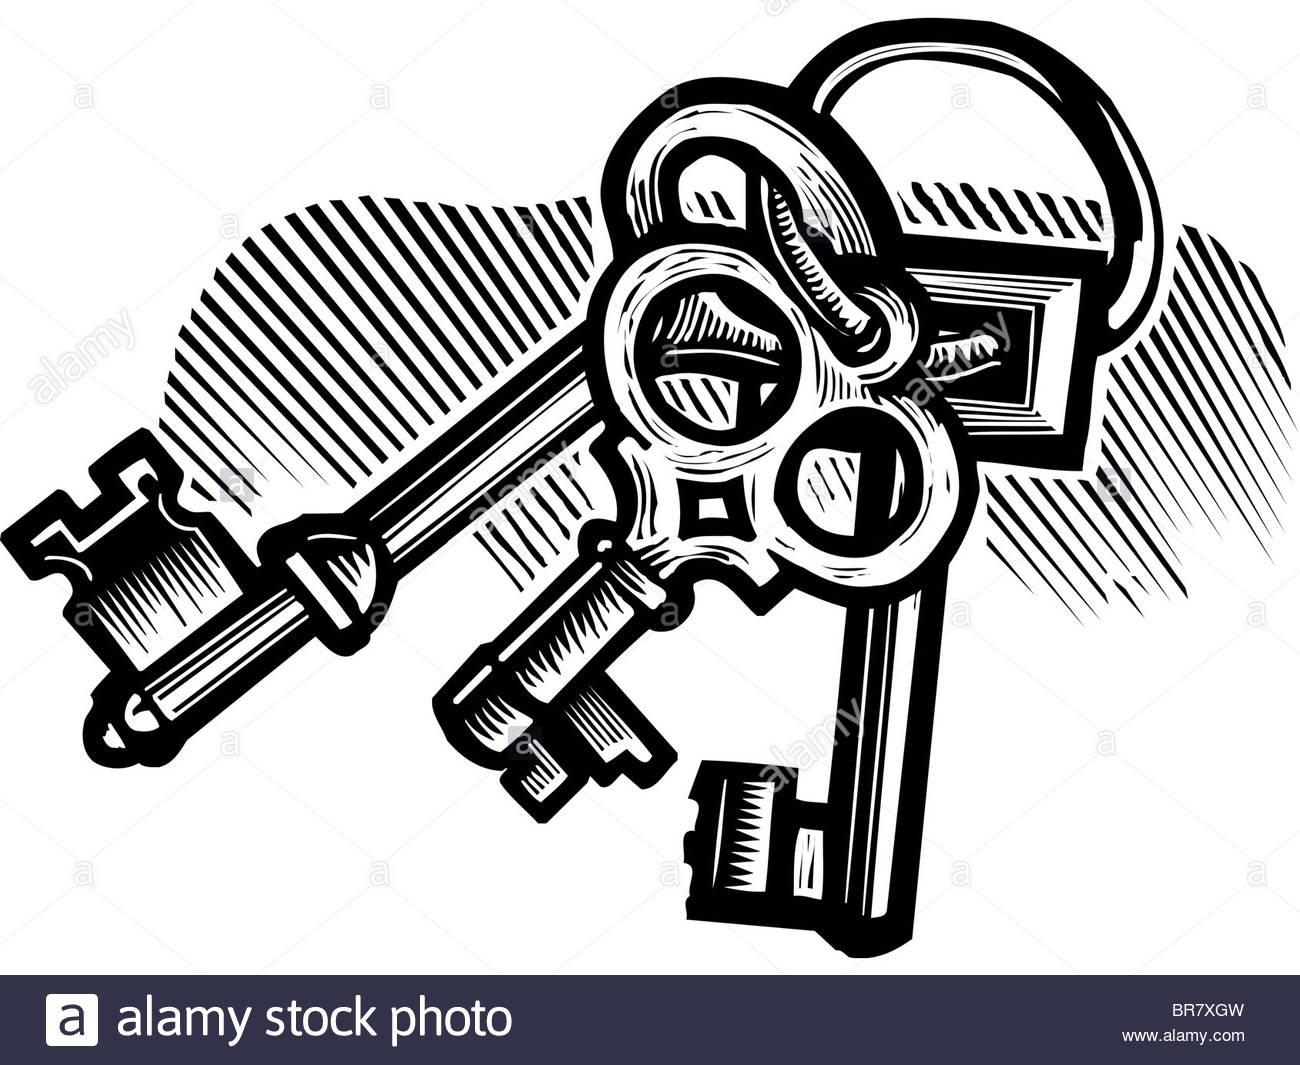 1300x1065 A Black And White Drawing Of A Set Of Skeleton Keys Stock Photo